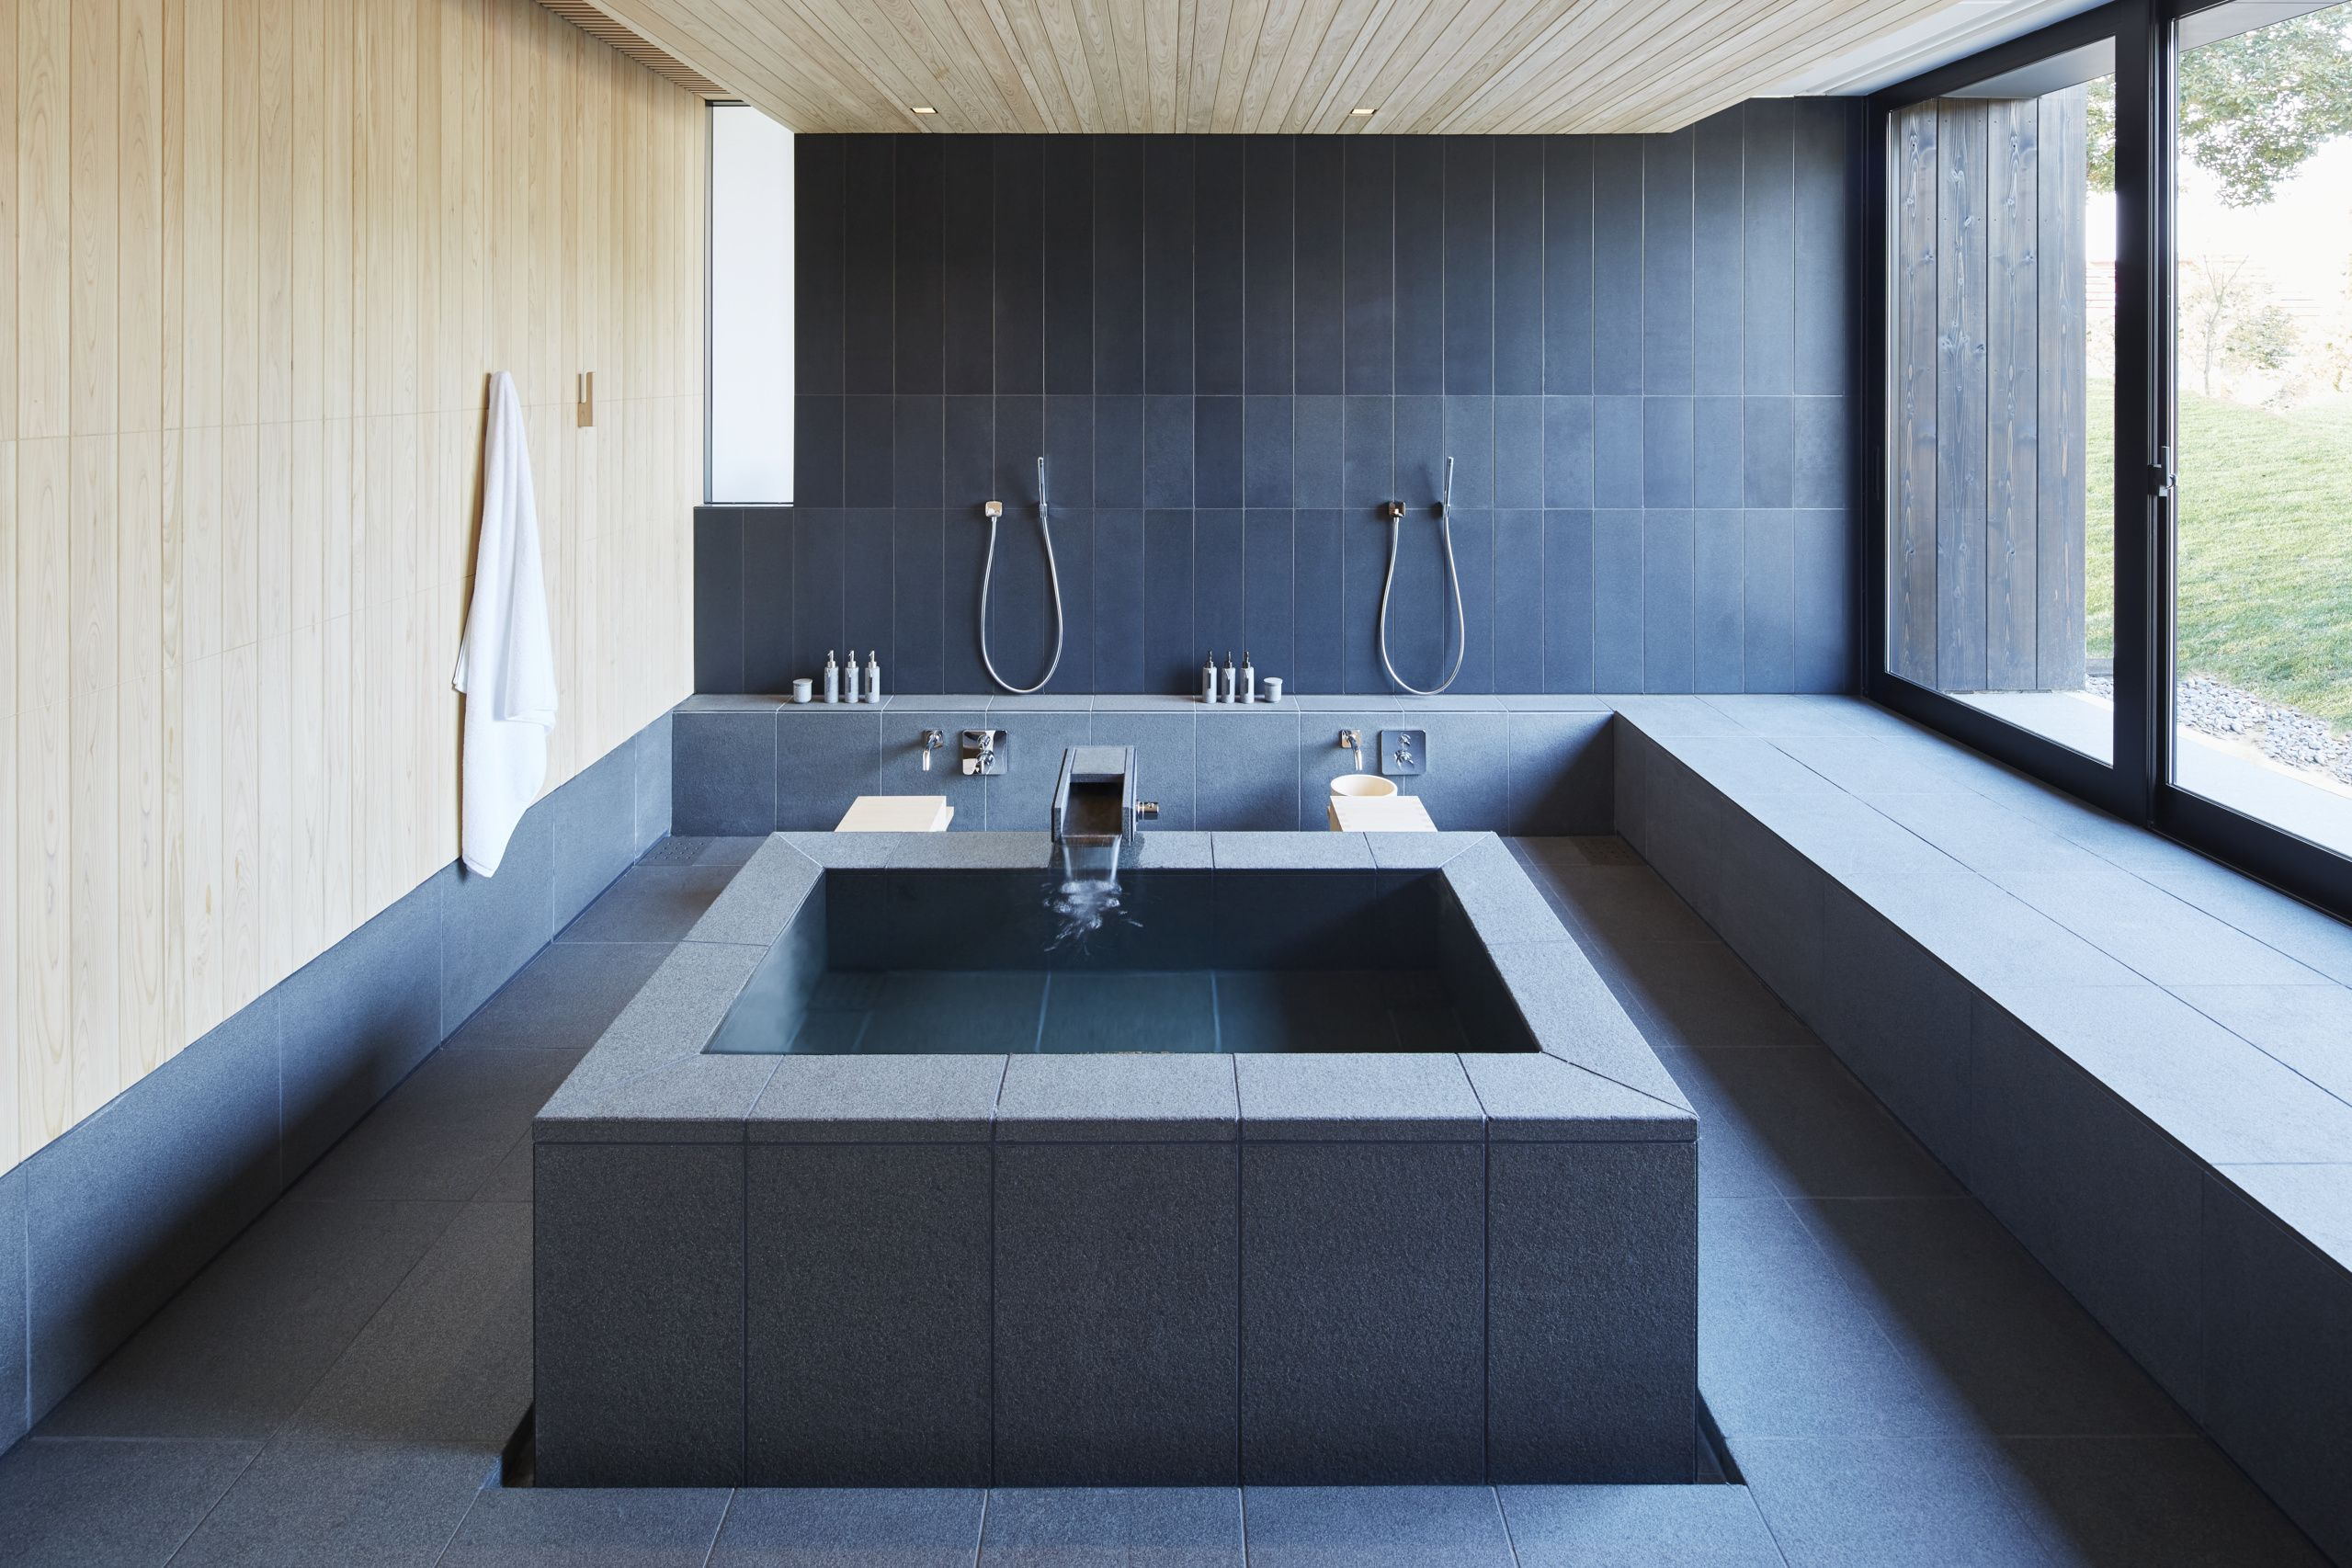 Unique Japanese Style Soaking Tub Motif - Bathtub Design Ideas ...